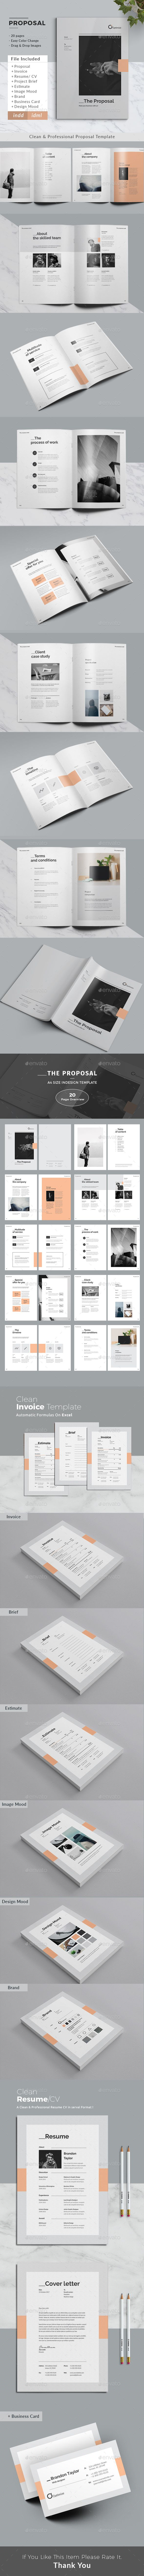 Proposal — Photoshop PSD #clean #report • Available here → https://graphicriver.net/item/proposal-pitch-pack/20384898?ref=pxcr